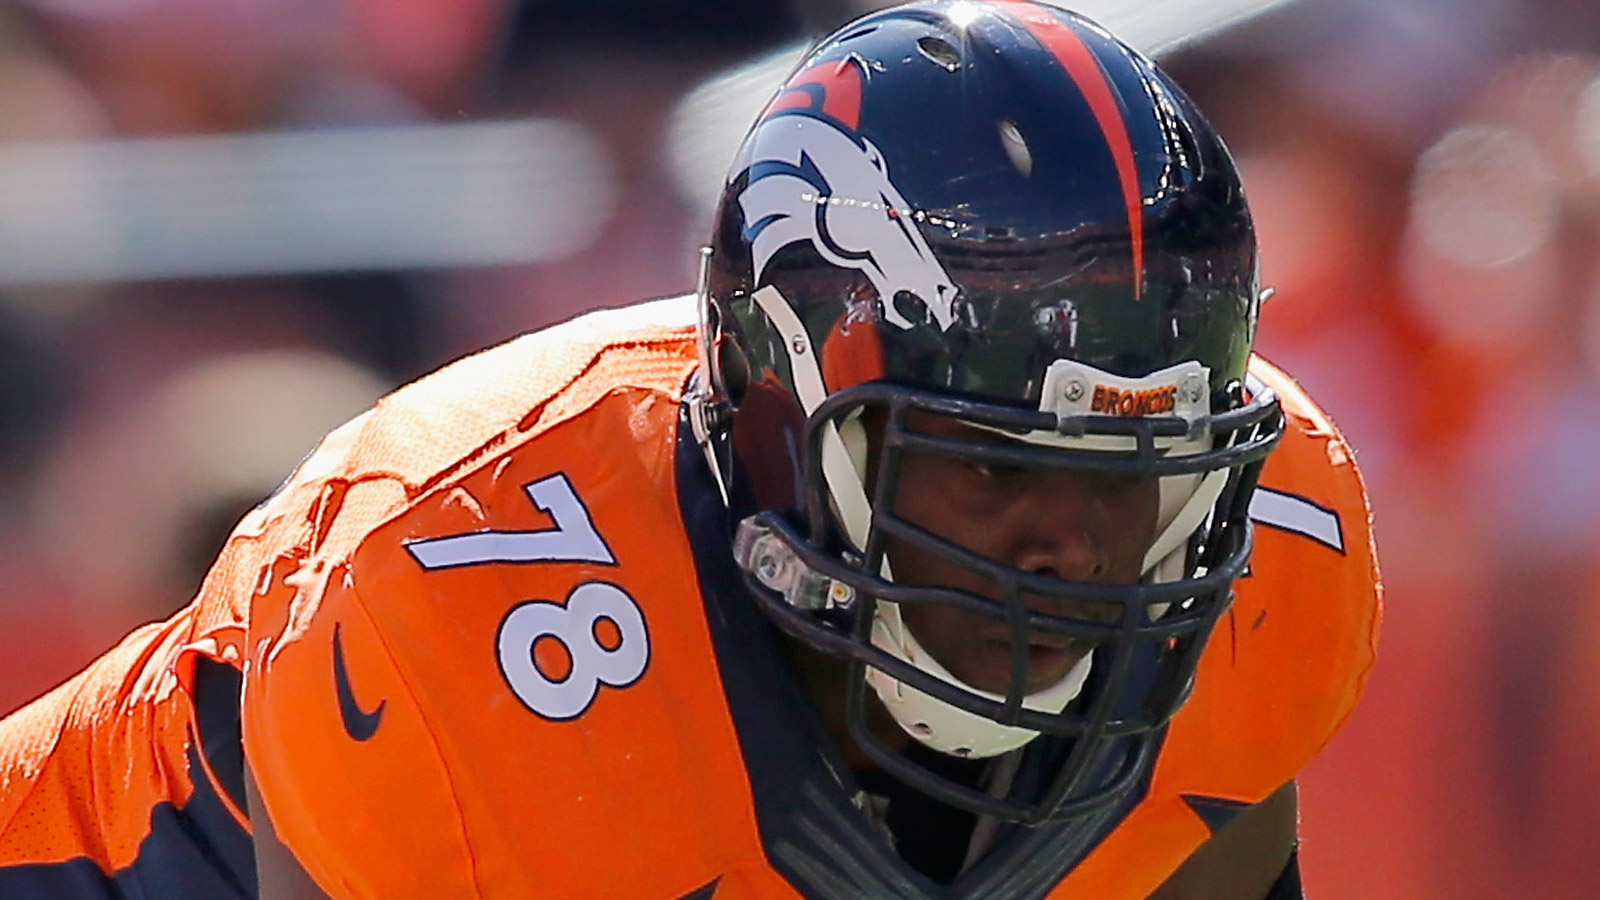 Offensive tackle Ryan Clady of the Denver Broncos lines up against the Arizona Cardinals at Sports Authority Field at Mile High on Oct. 5, 2014. (credit: Doug Pensinger/Getty Images)